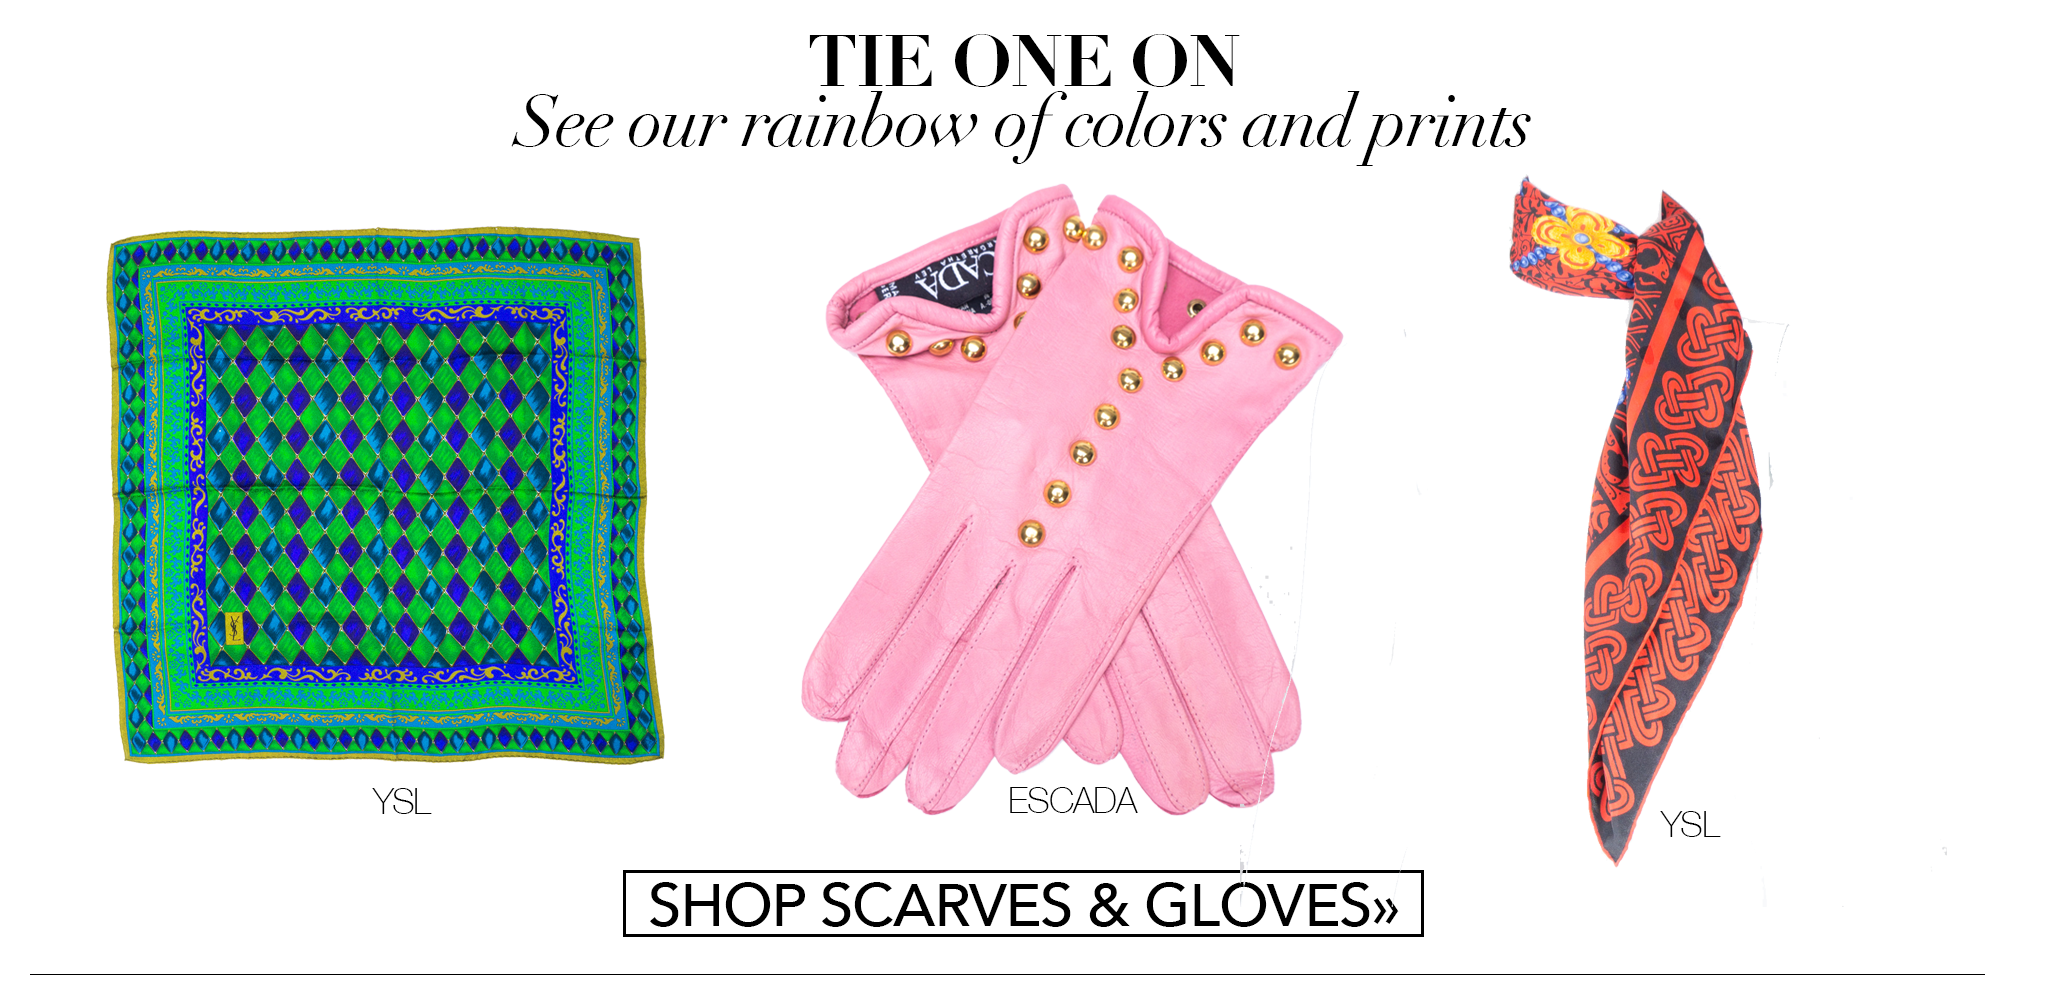 Recess Consignment Escada Gloves YSL Scarves